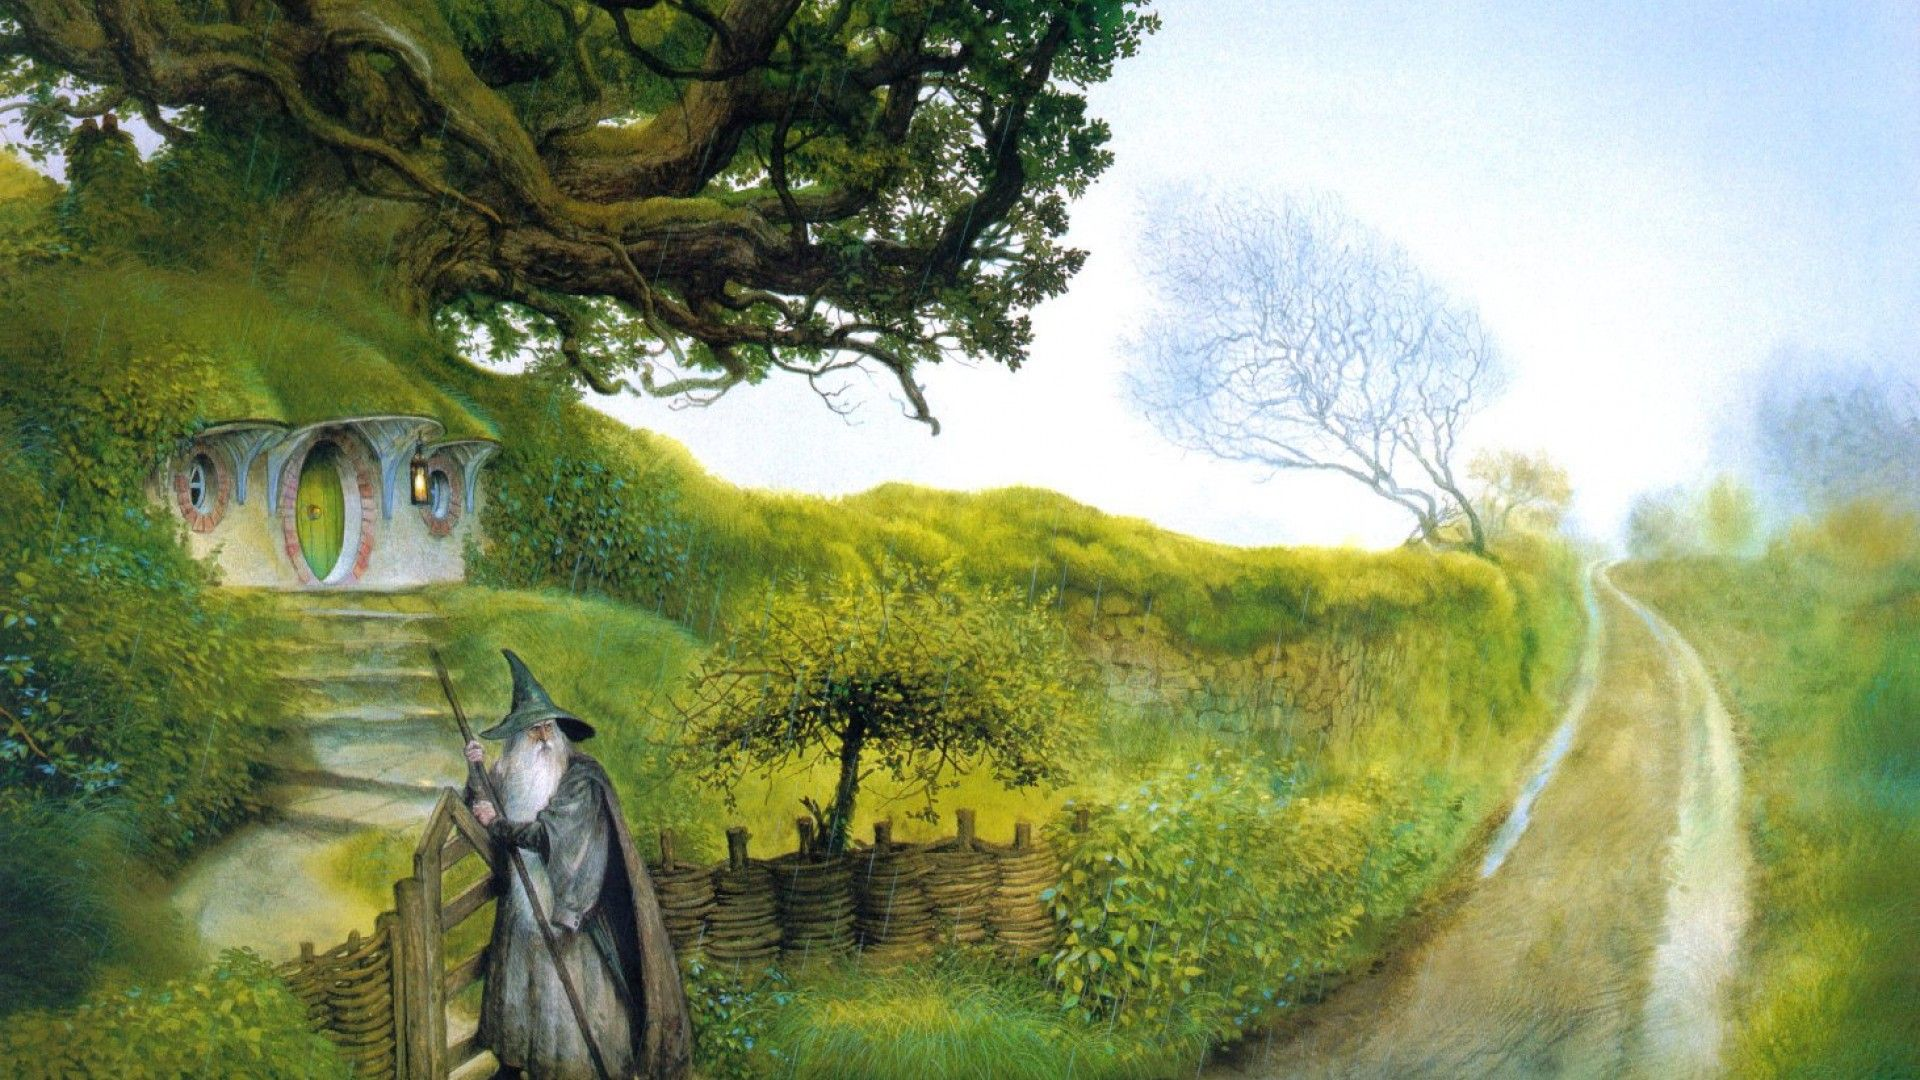 Lotr The Shire Wallpapers Top Free Lotr The Shire Backgrounds